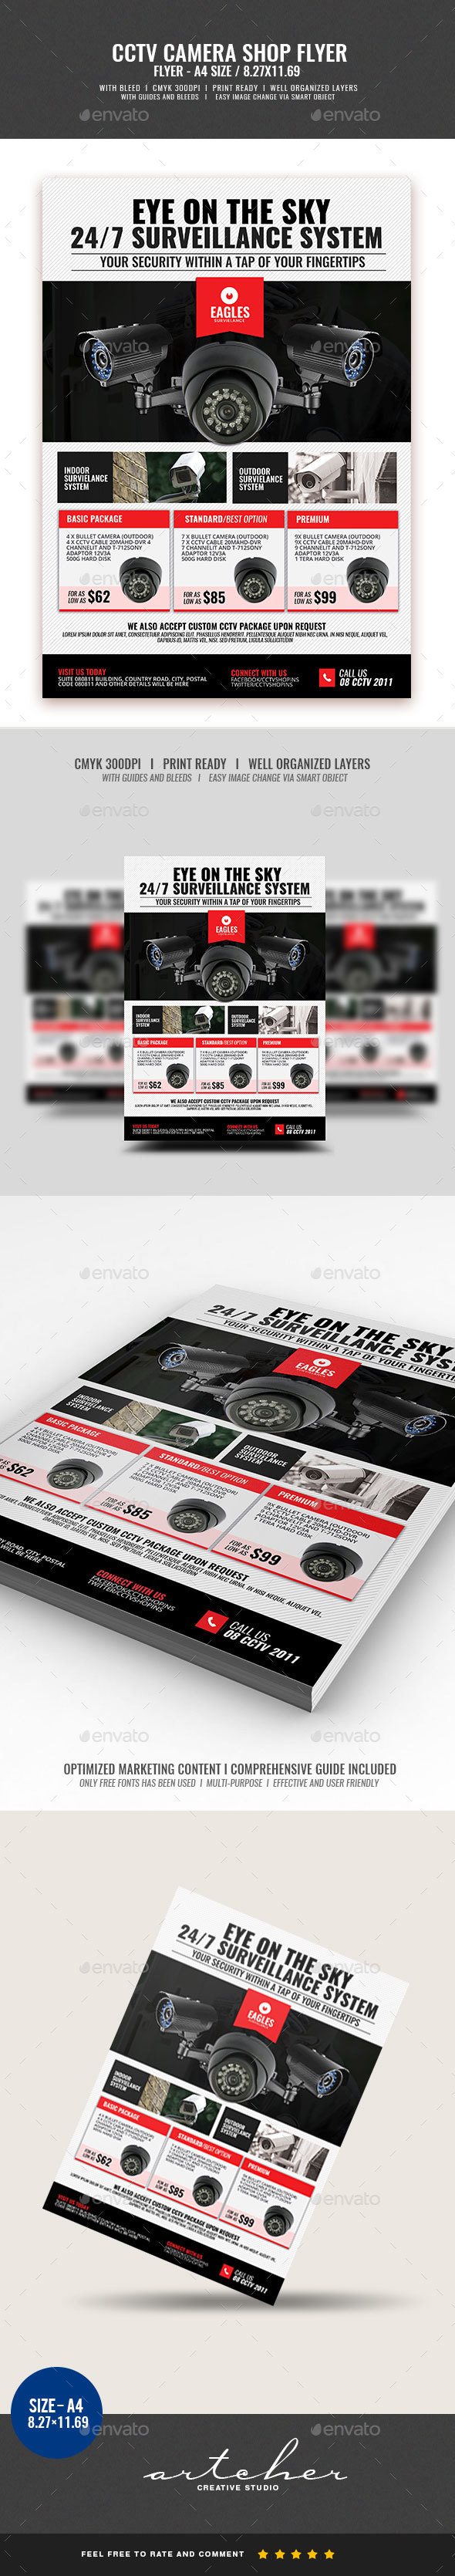 CCTV Camera Shop Flyer v3 - Commerce Flyers